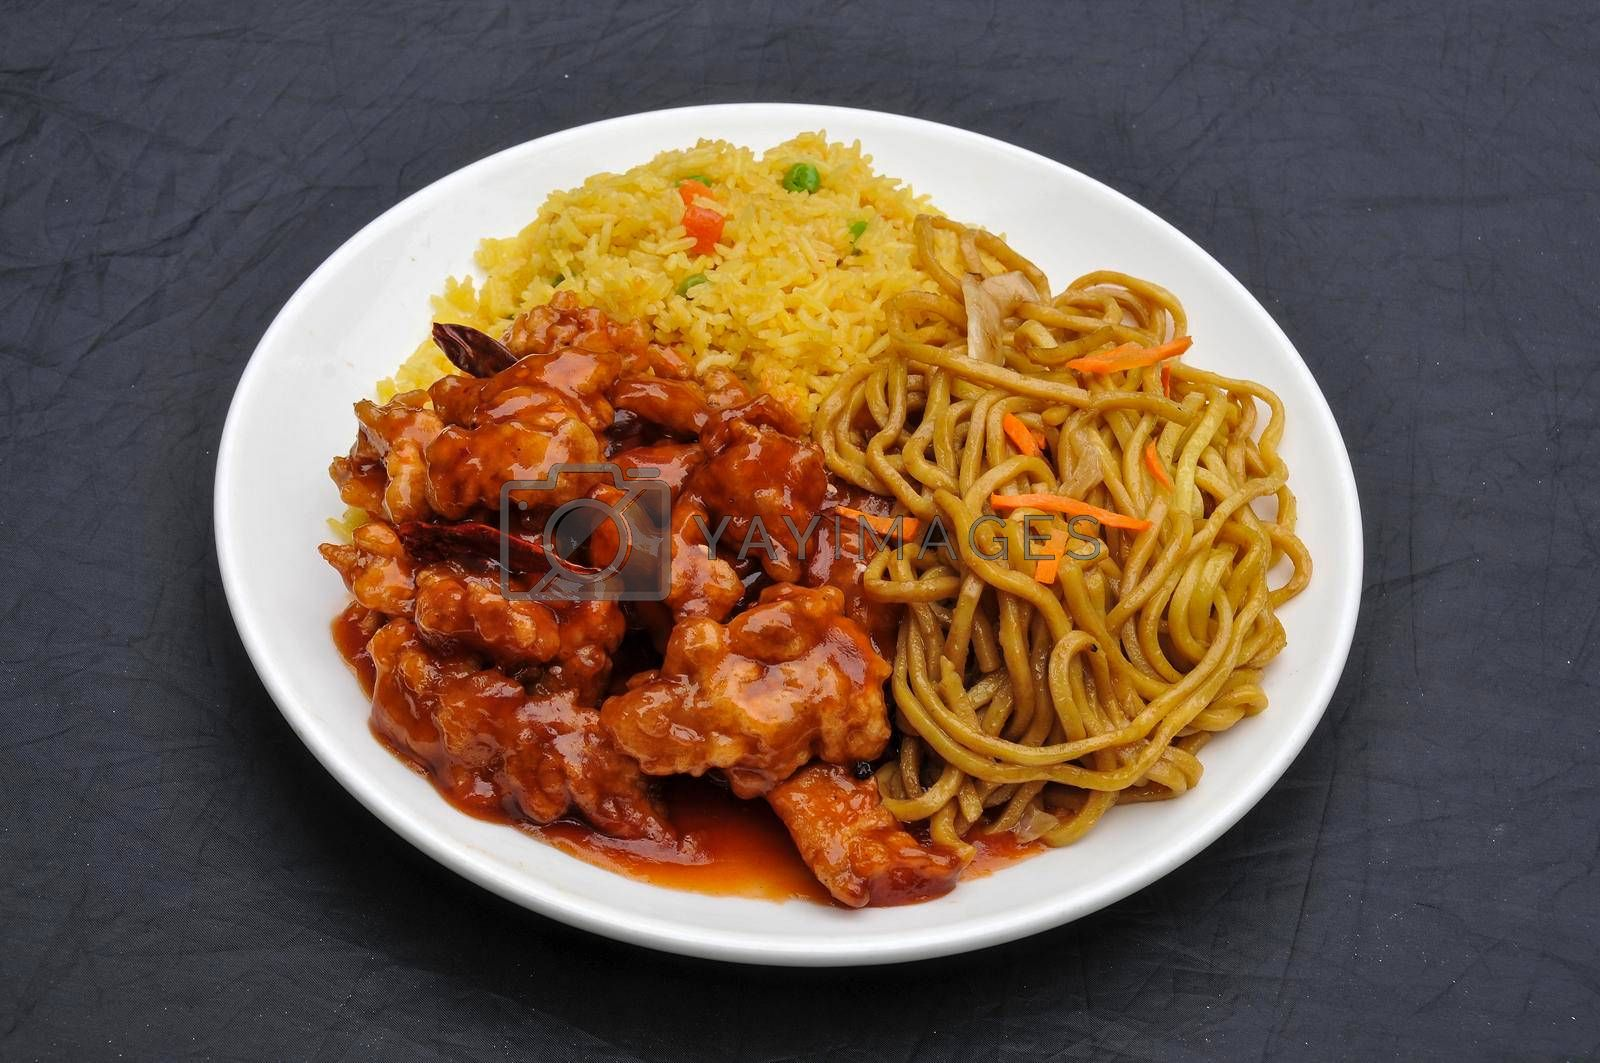 Traditional and authentic Chinese cuisine known as general tsu chicken